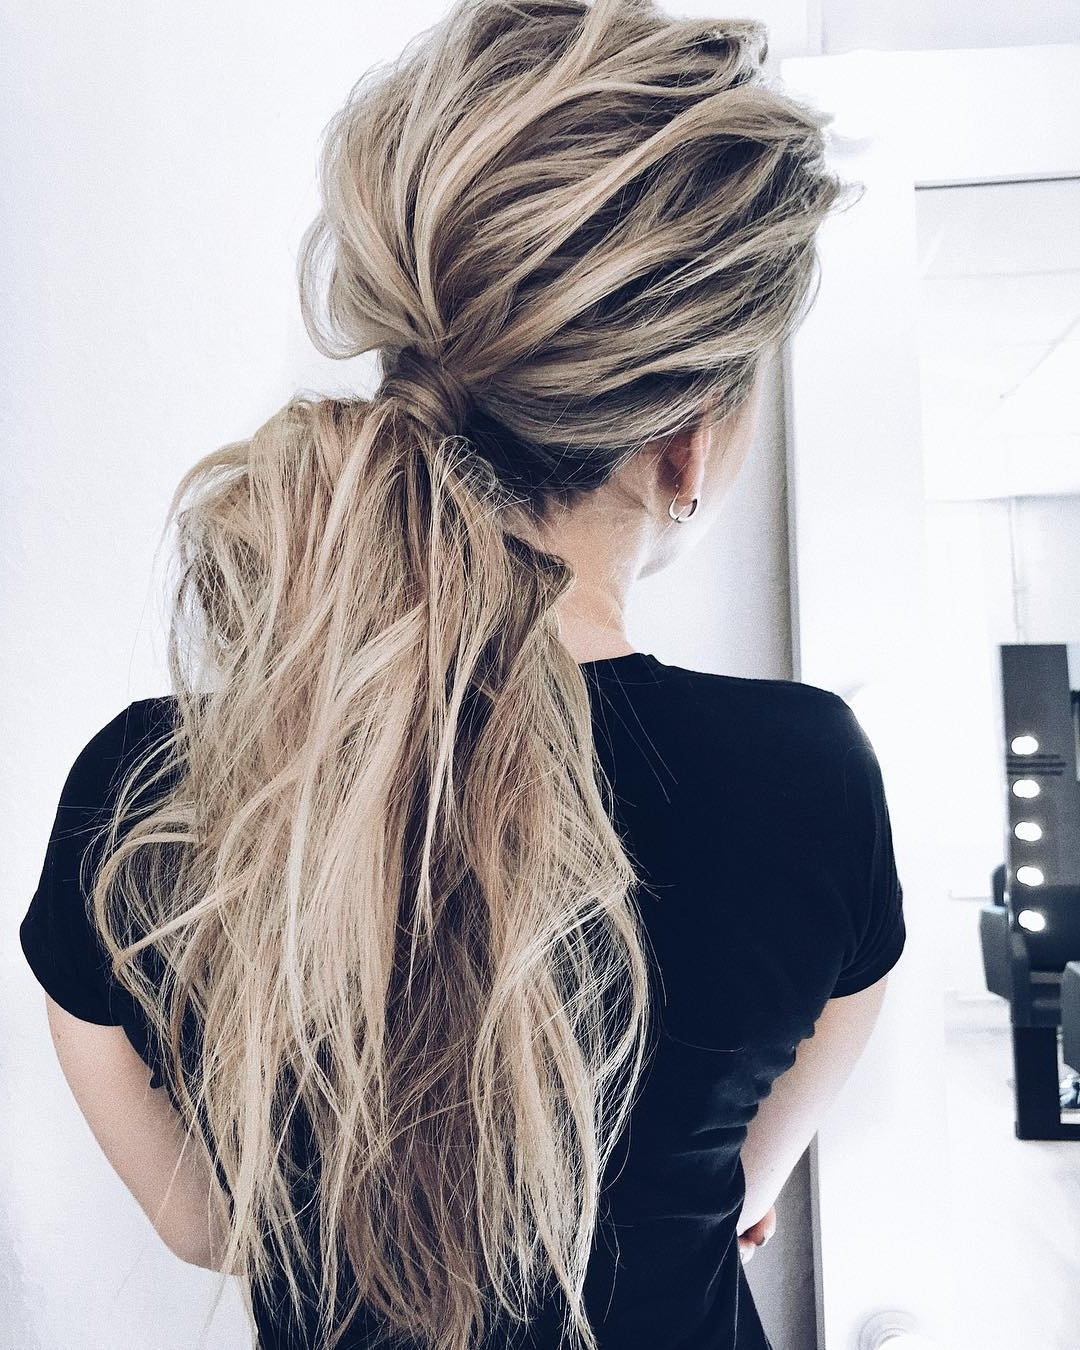 10 Creative Ponytail Hairstyles For Long Hair, Summer Hairstyle Within Newest Blonde Flirty Teased Ponytail Hairstyles (View 3 of 20)